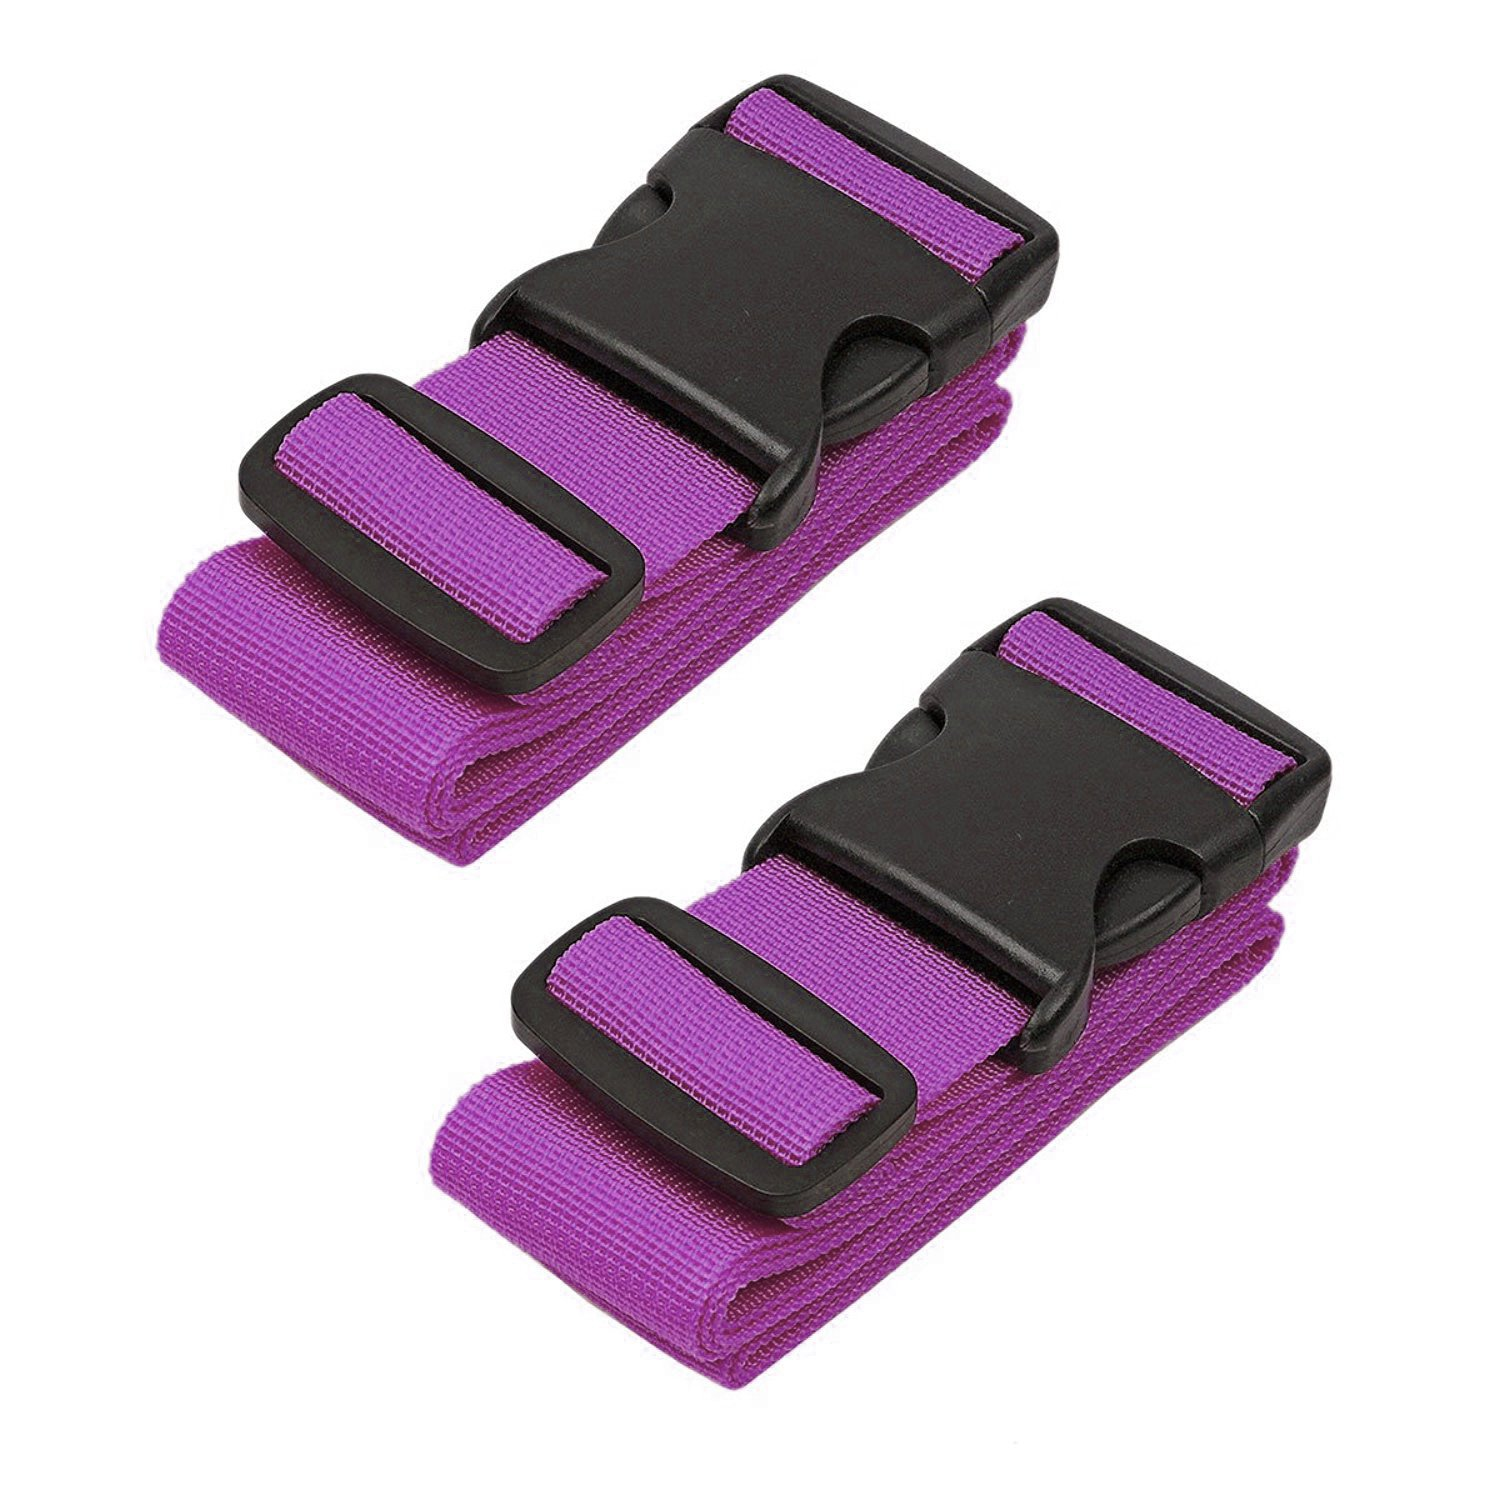 SunTrade 2 Pack Adjustable Travel Luggage Packing Belt,Suitcase Strap(Purple) by Sun-trade (Image #1)